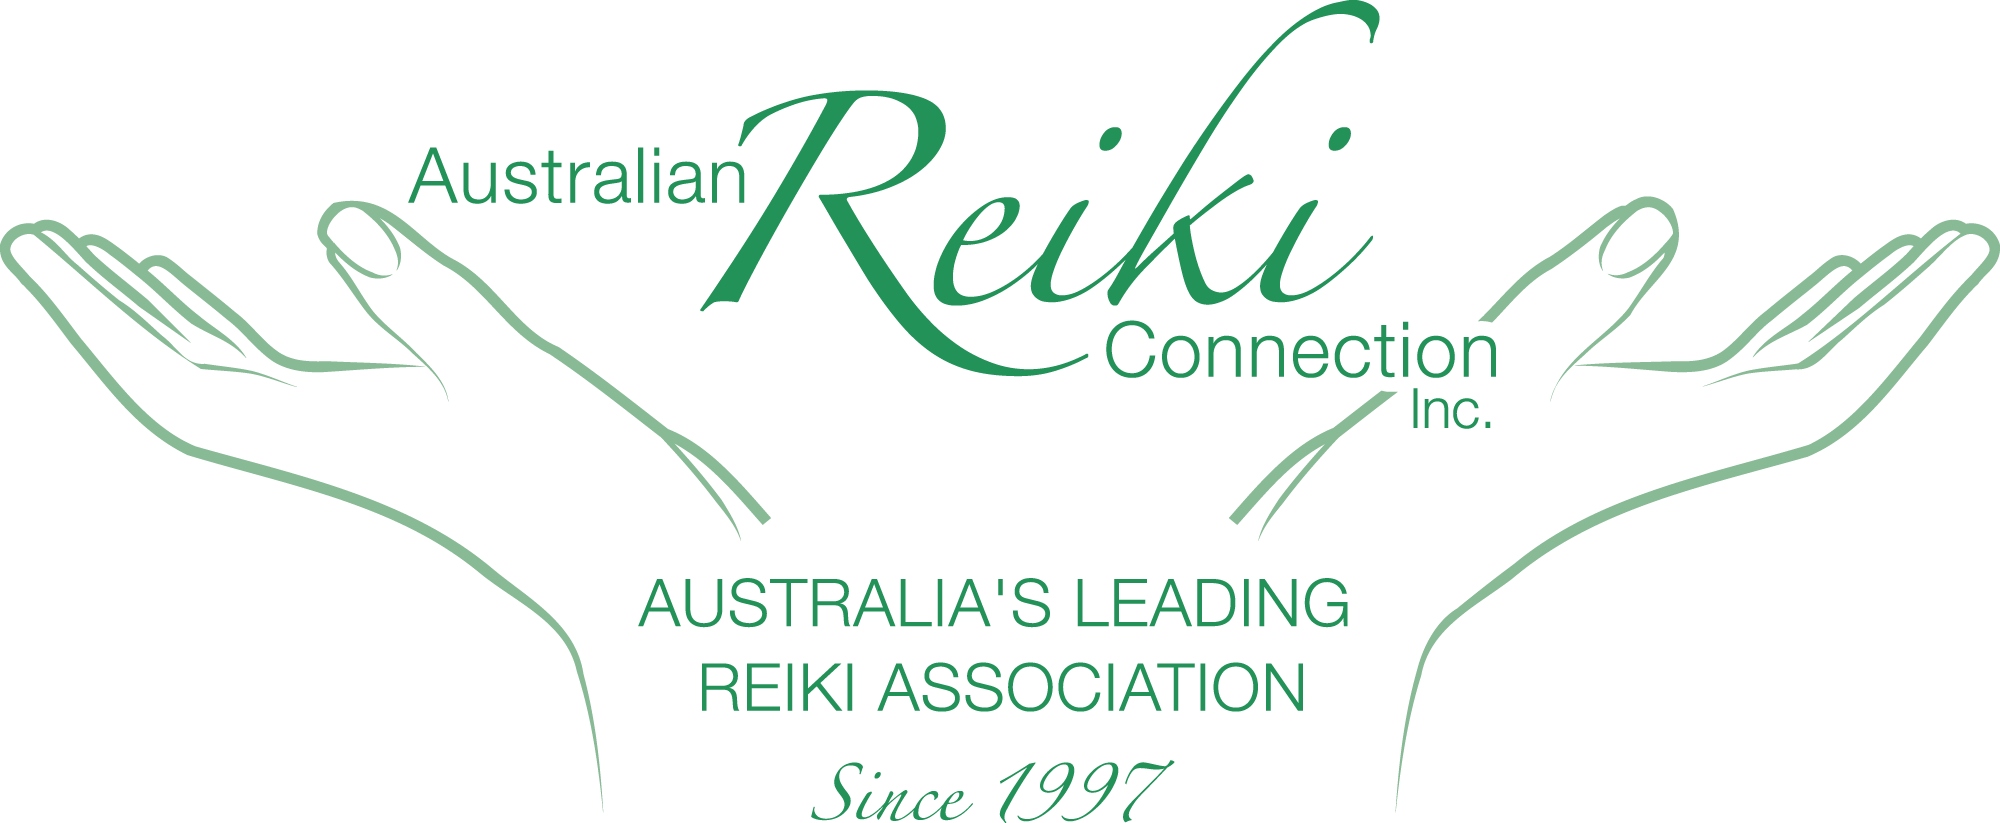 Australian Reiki Connection